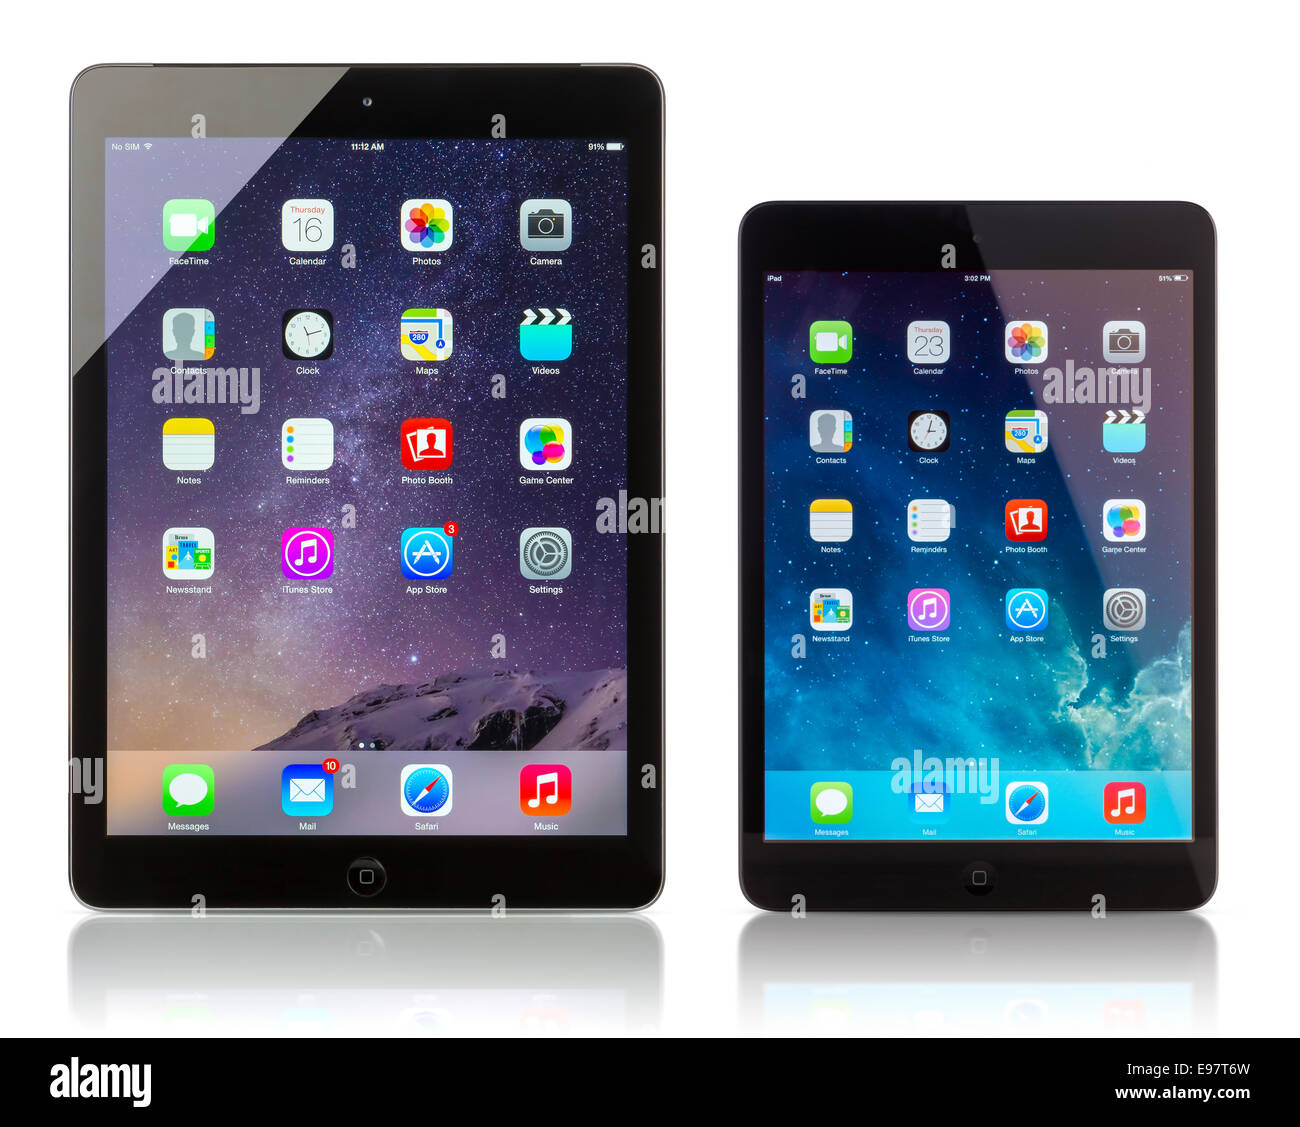 Apple iPad Wi-Fi + Mostrar celulares iOS 8 y iPad Mini con iOS iOS 7.1 homescreen. Imagen De Stock